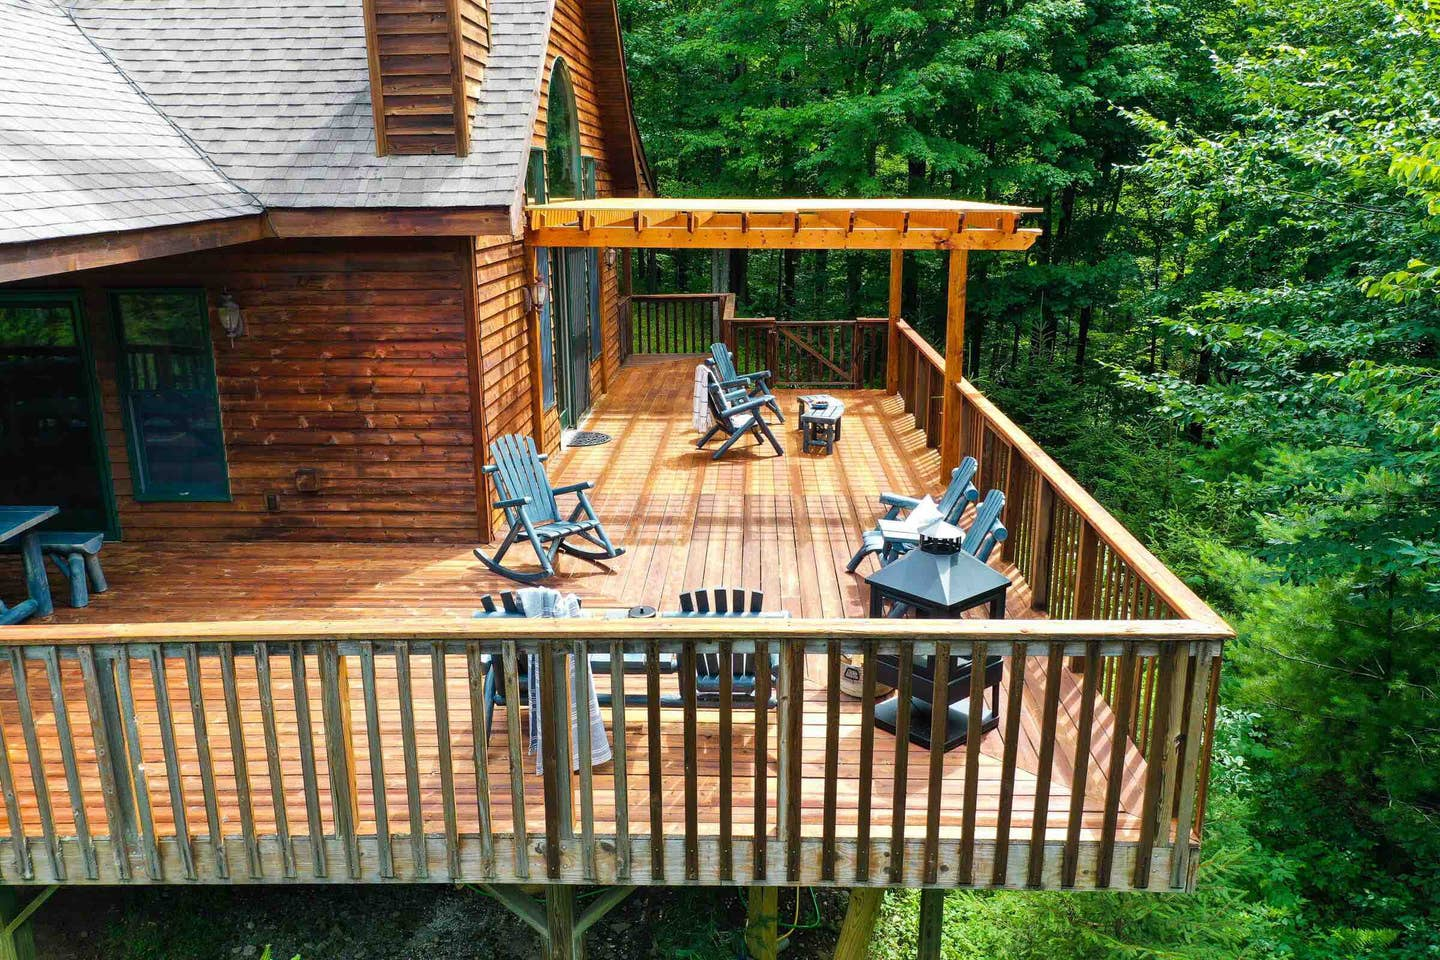 Where To Stay in West Catskills NY - Hirsch Manor luxurious cabin in the forest at the base of the mountain